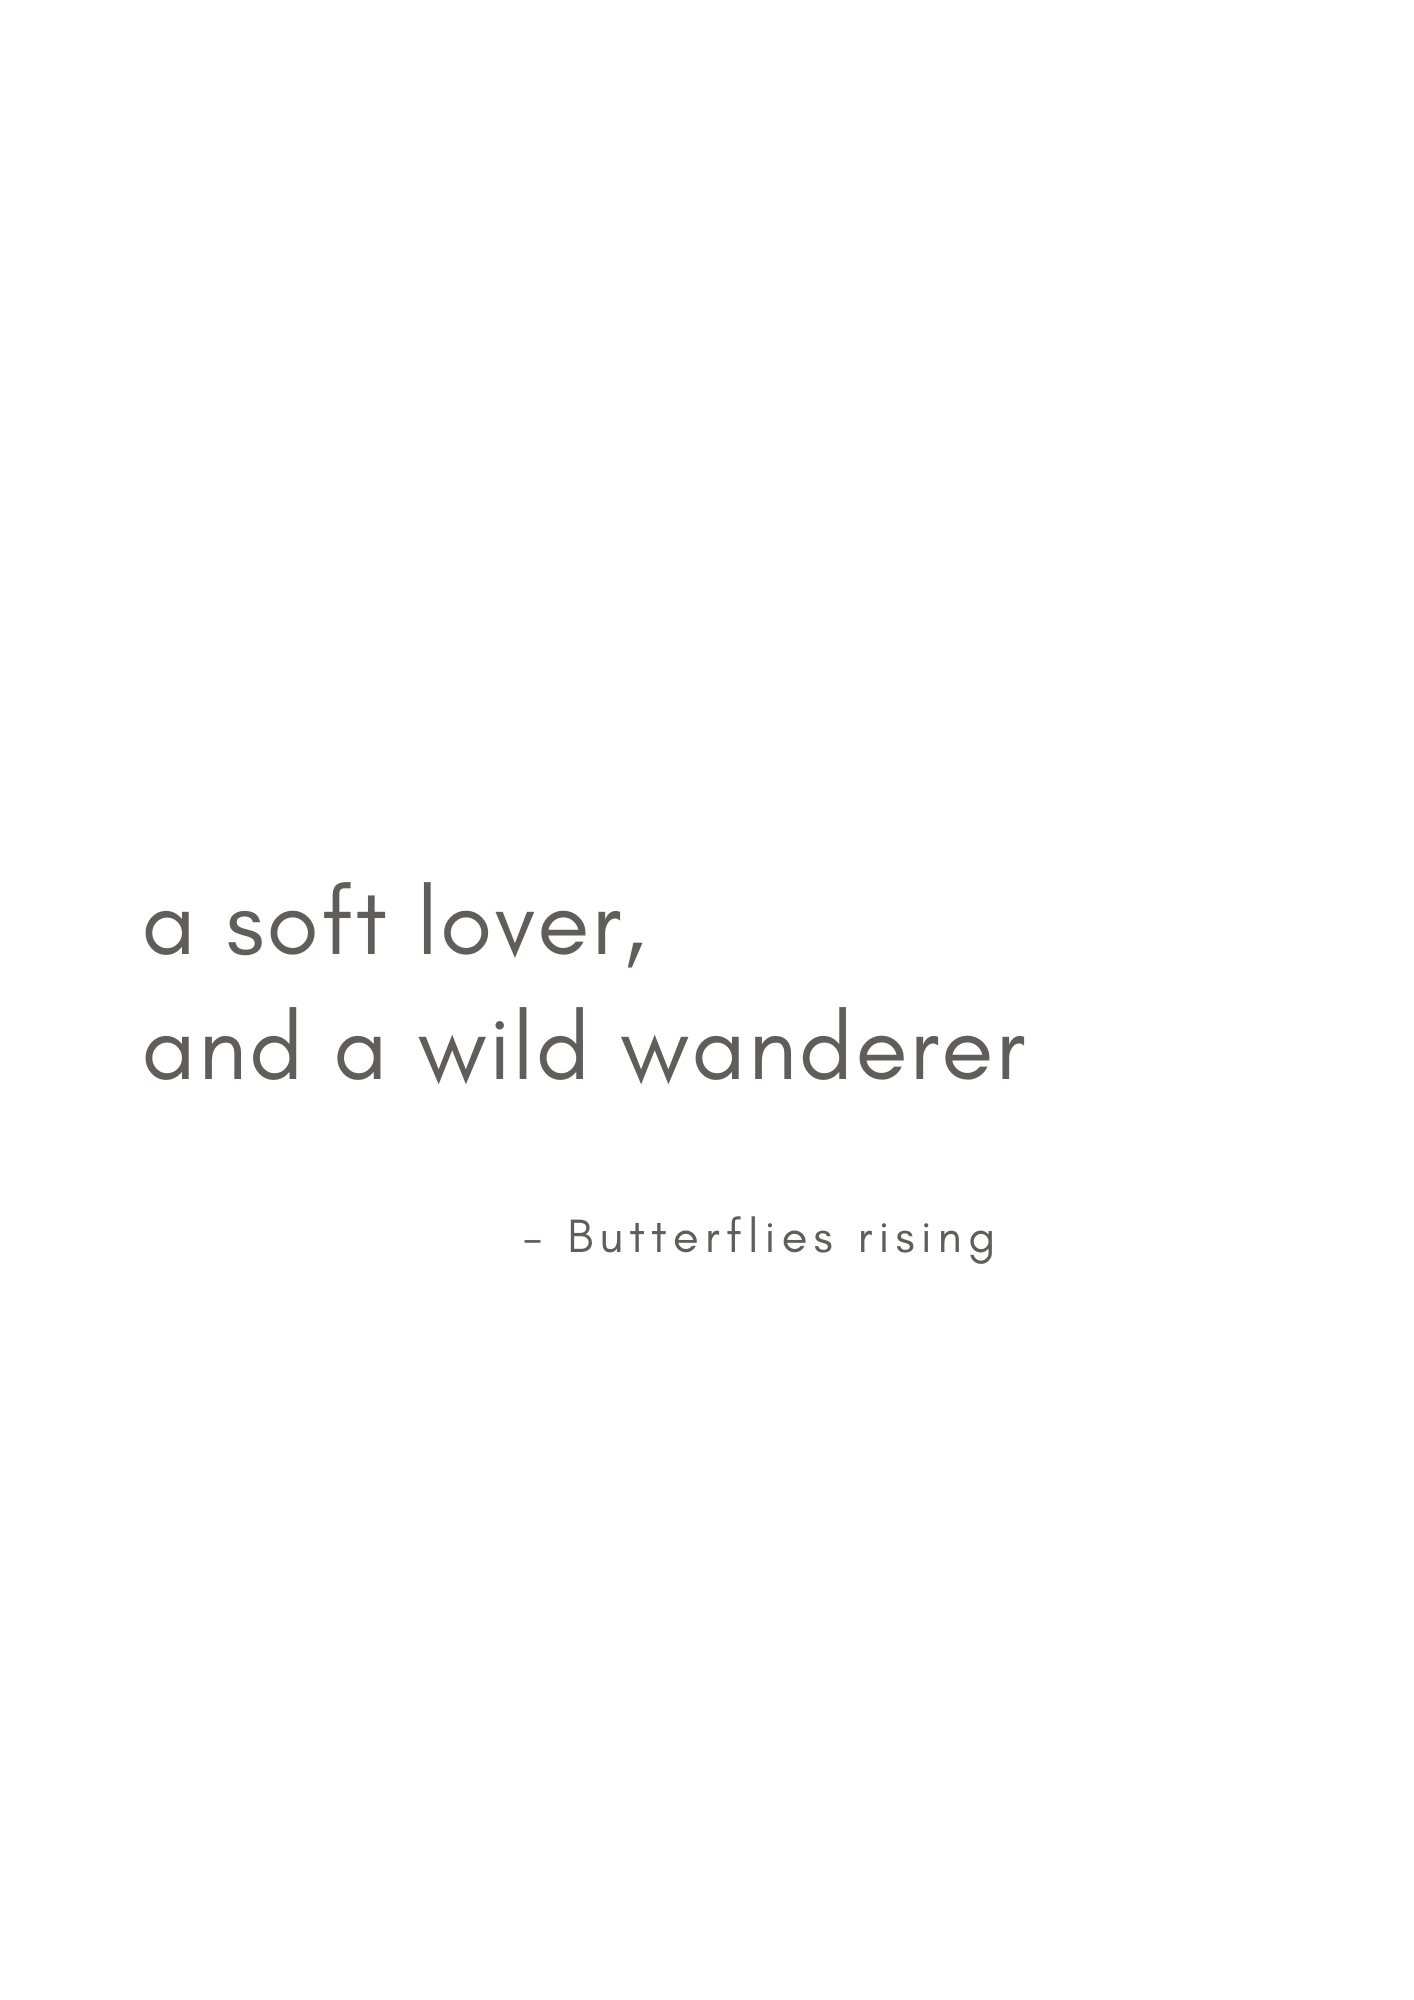 A_soft_lover_and_a_wild_wanderer1.png